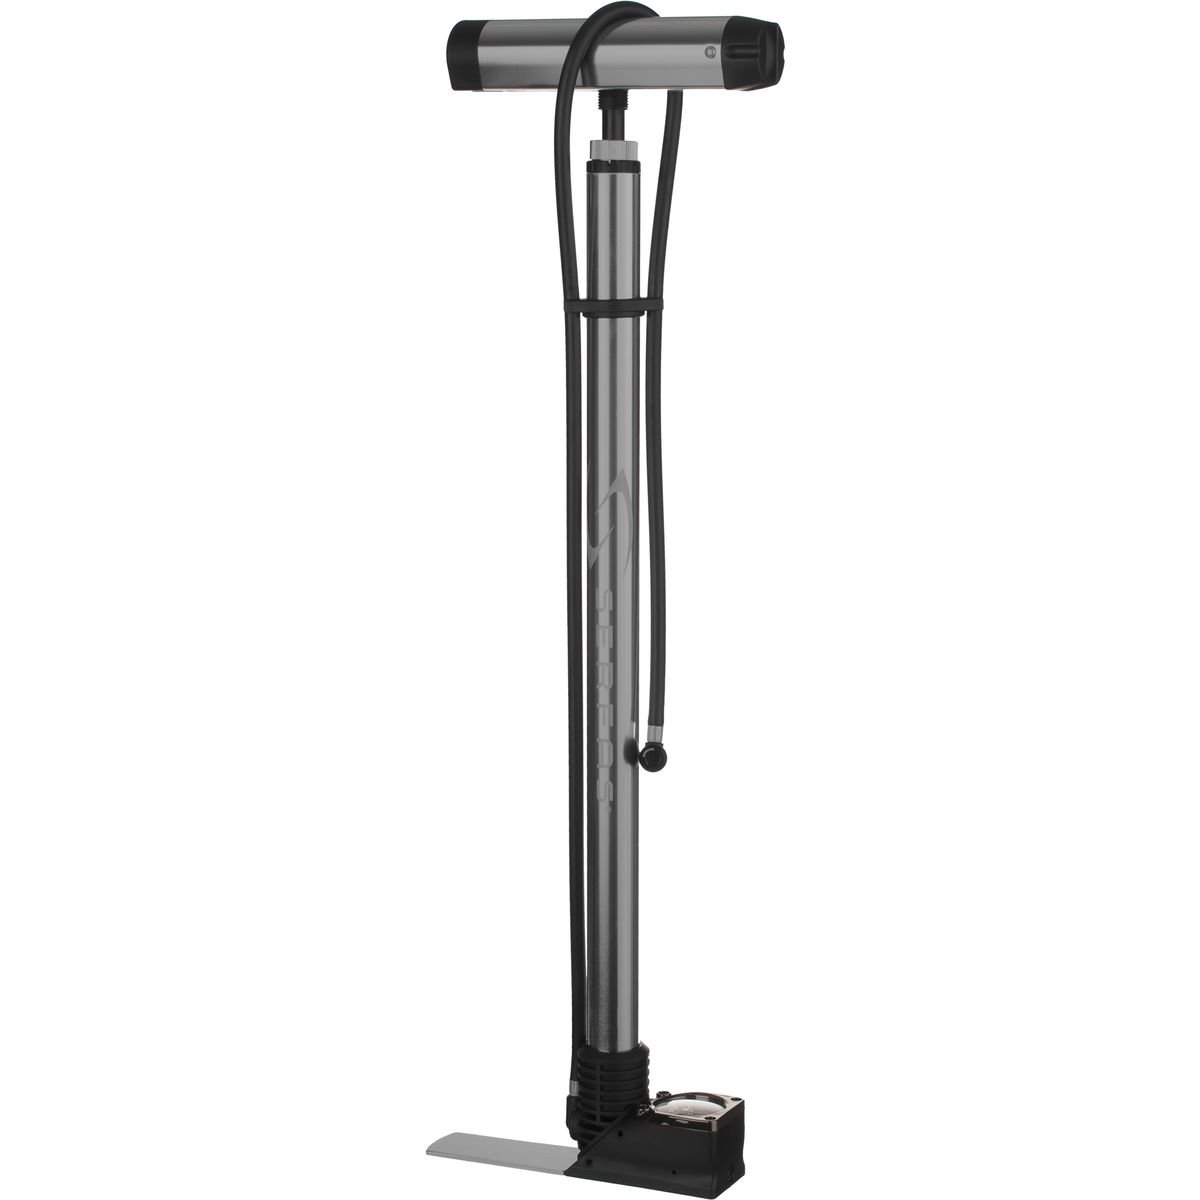 Perfect Amazon.com : Serfas FPT 100 Folding Floor Pump One Size : Sports U0026 Outdoors